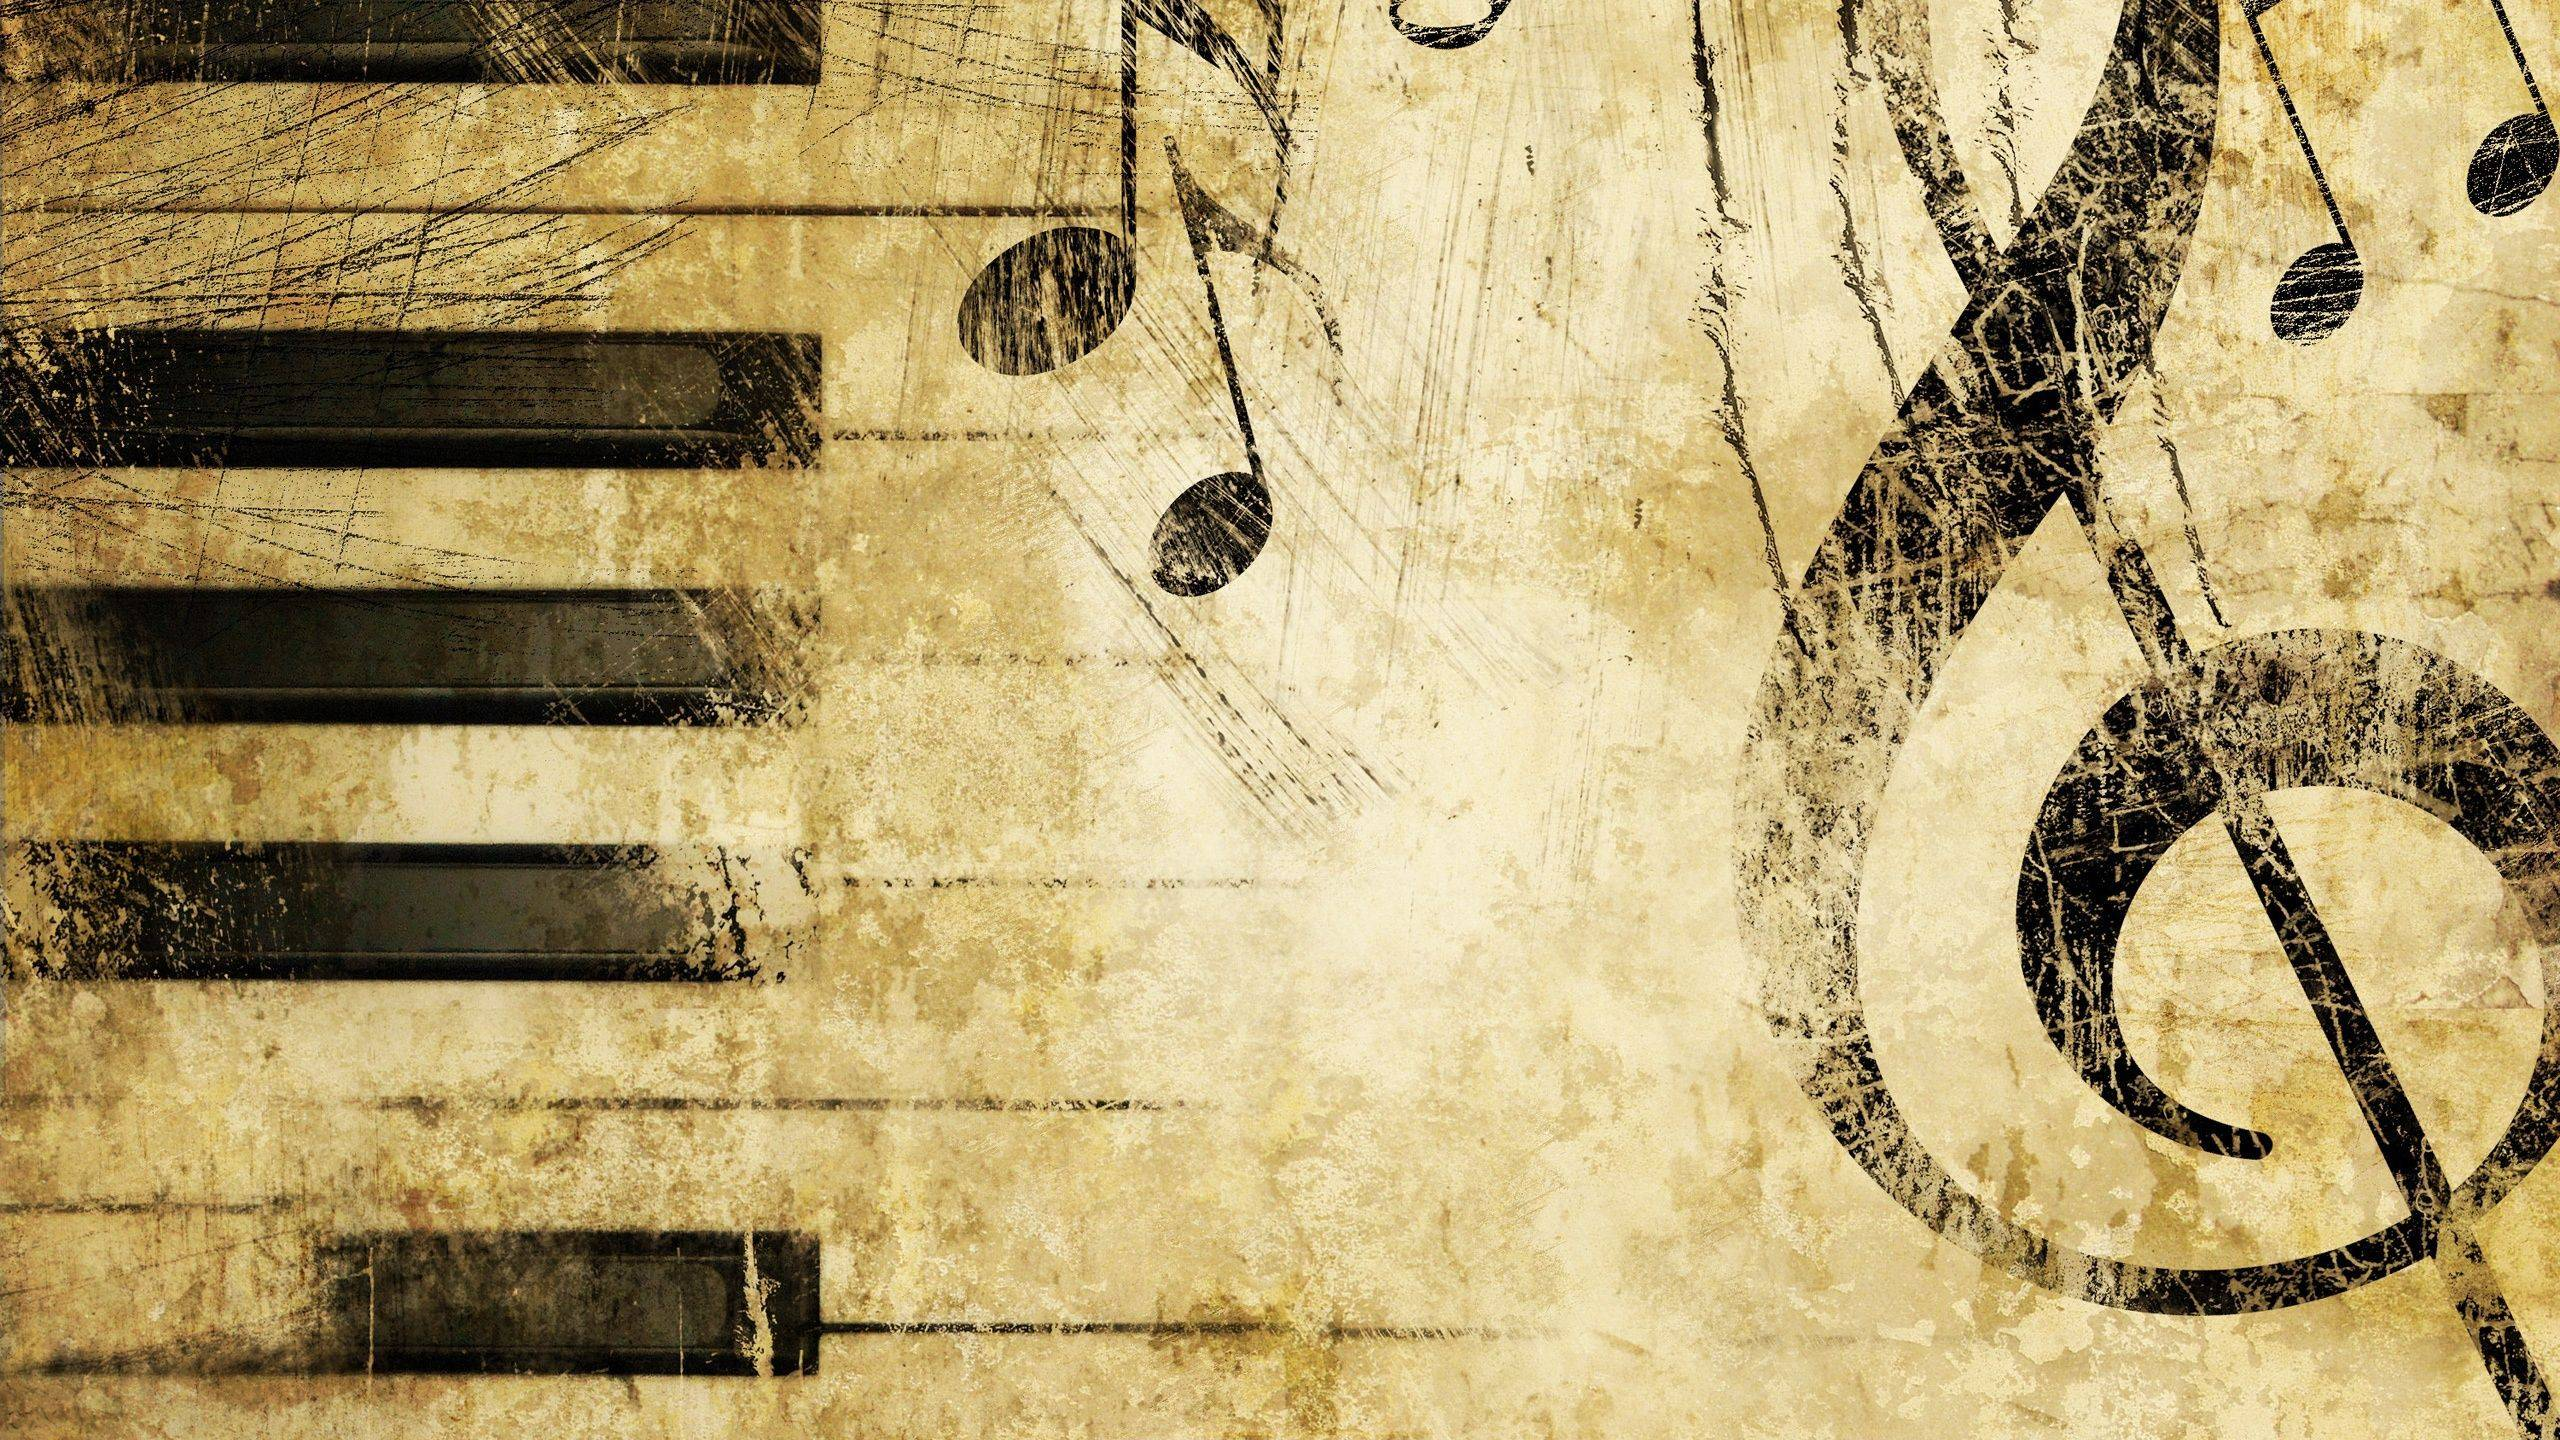 Piano Music Wallpaper: Piano Backgrounds Music